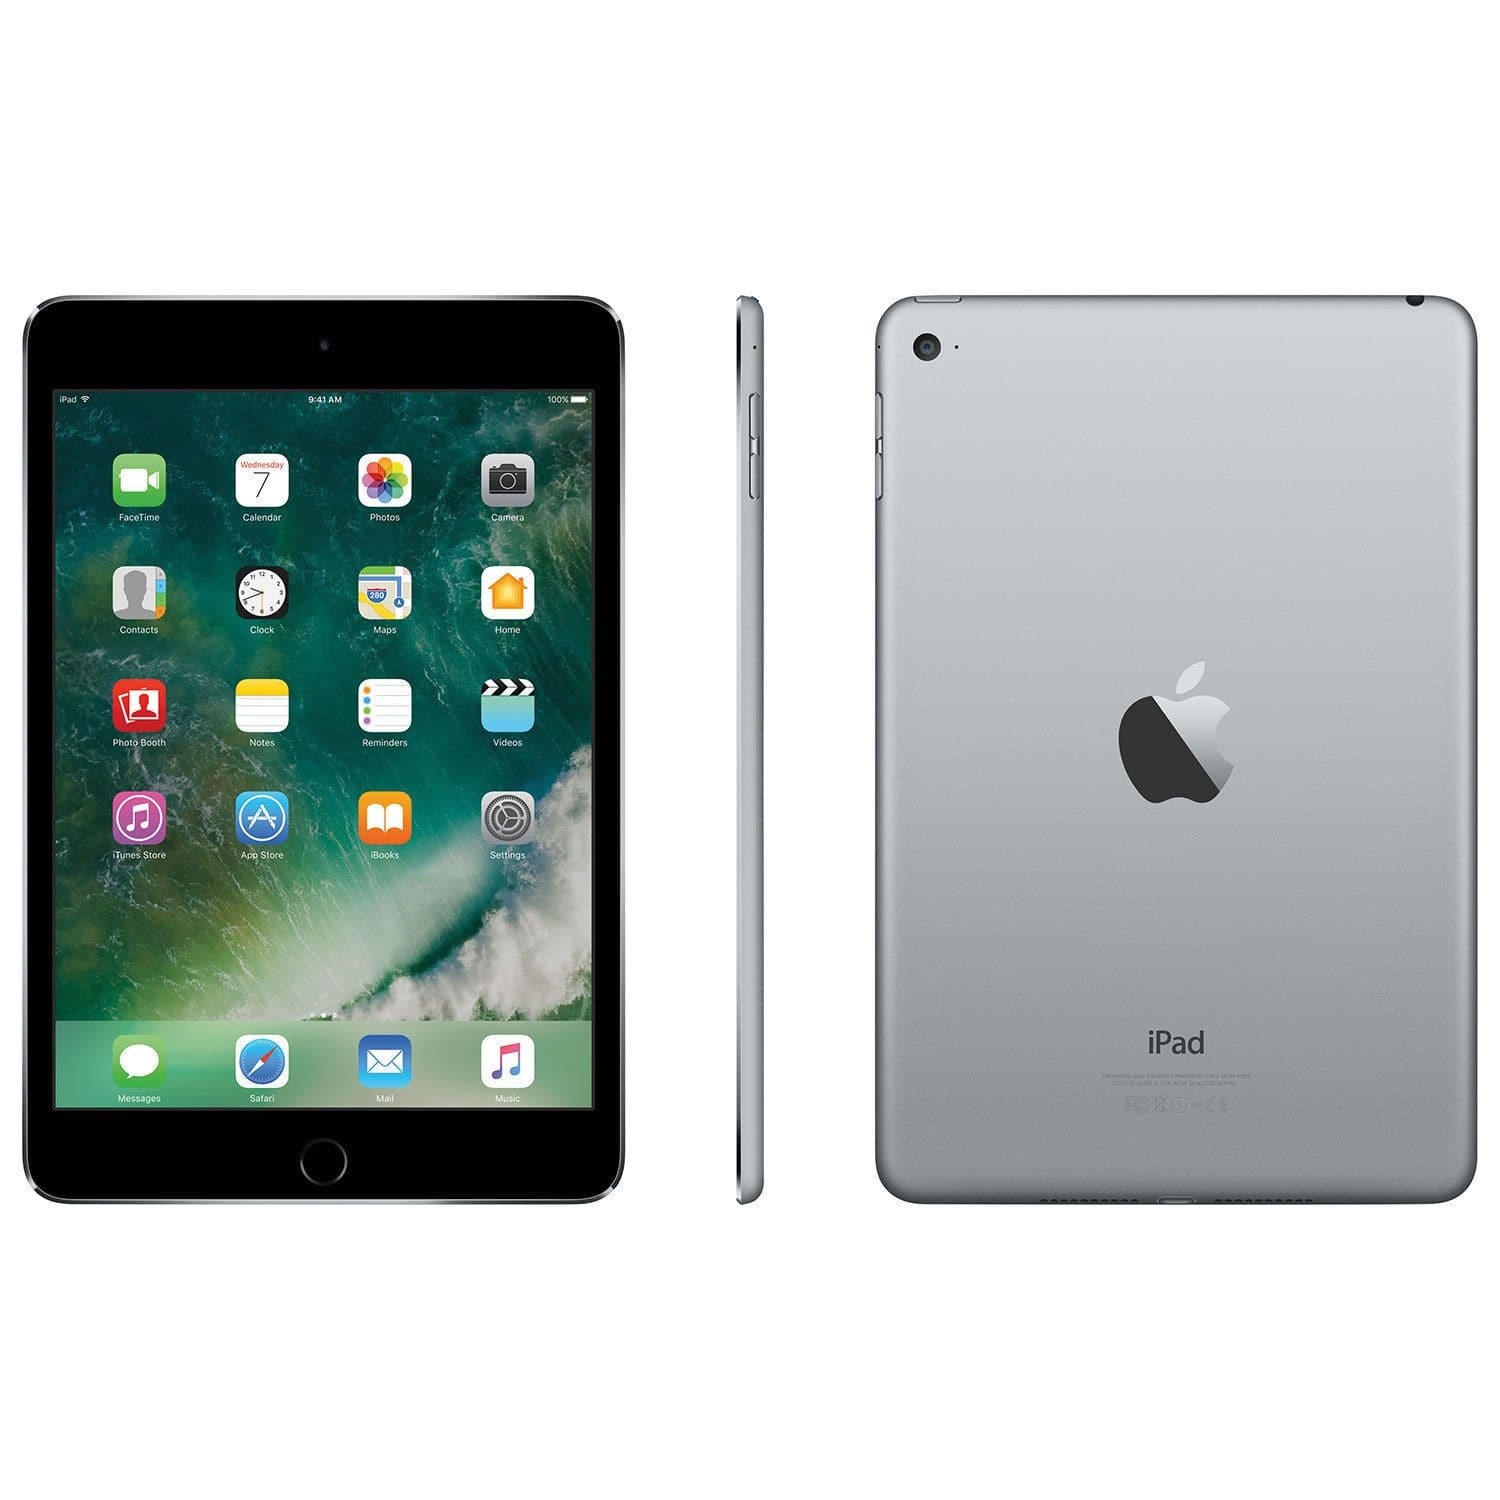 Apple iPad mini 4 WiFi 128GB  - Space Grey (MK9N2CL/A)